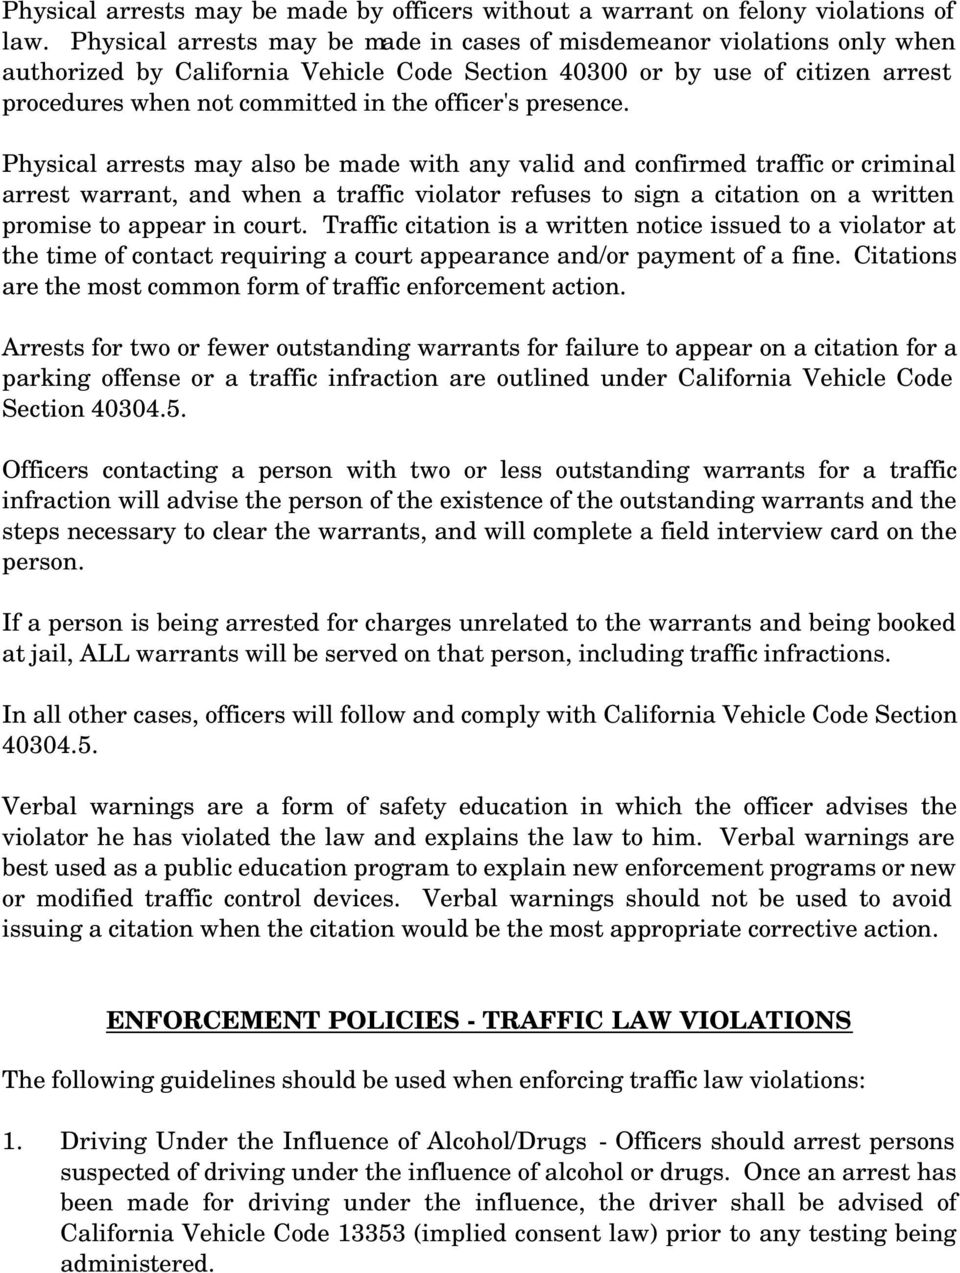 CHAPTER 7 - TRAFFIC AND TRAFFIC ACCIDENT PROCEDURES - PDF